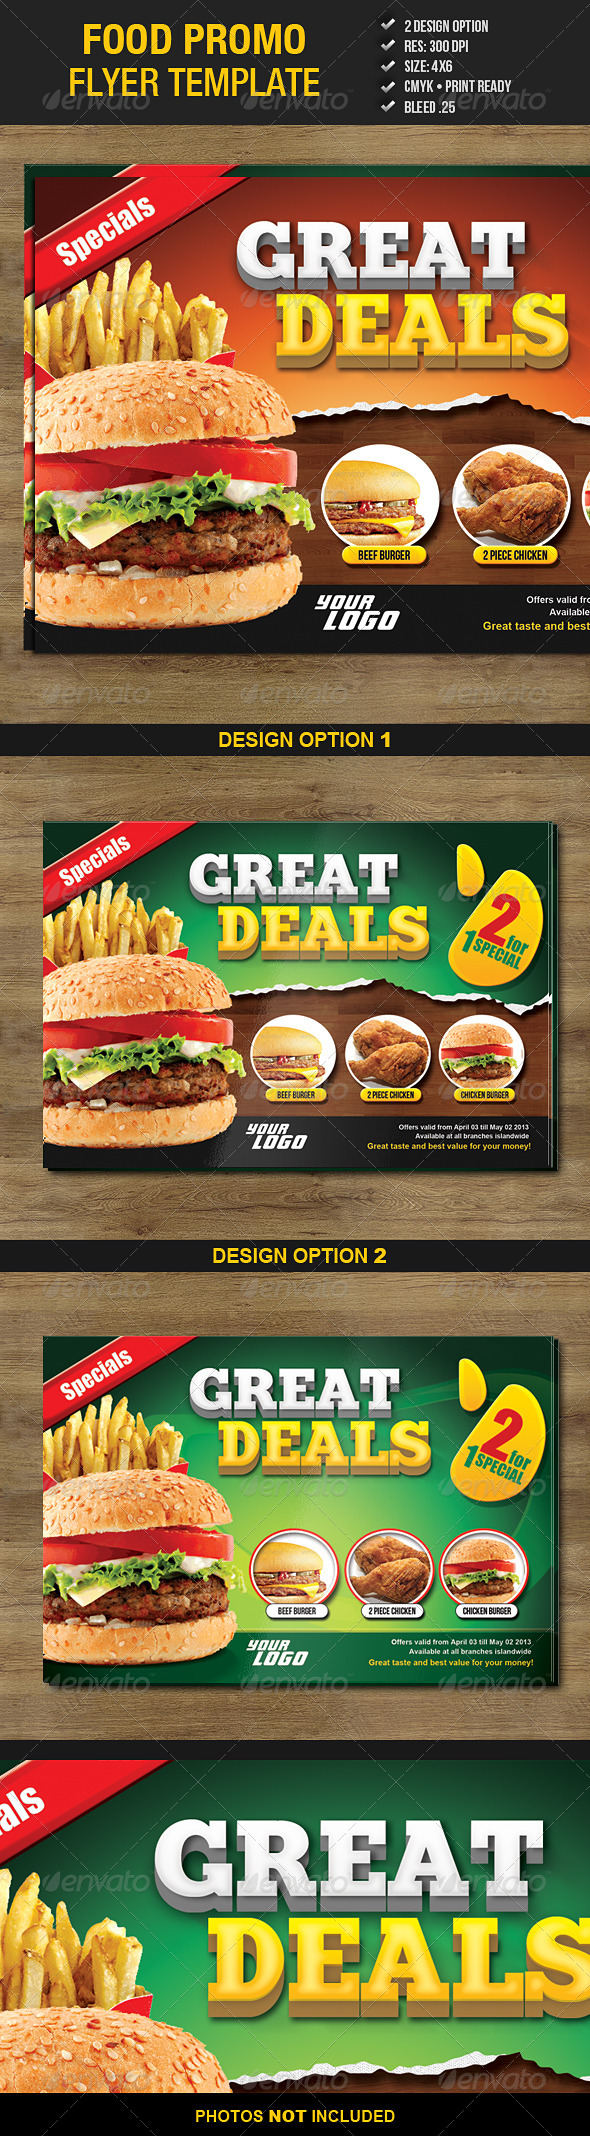 food promo flyer template graphicriver. Black Bedroom Furniture Sets. Home Design Ideas